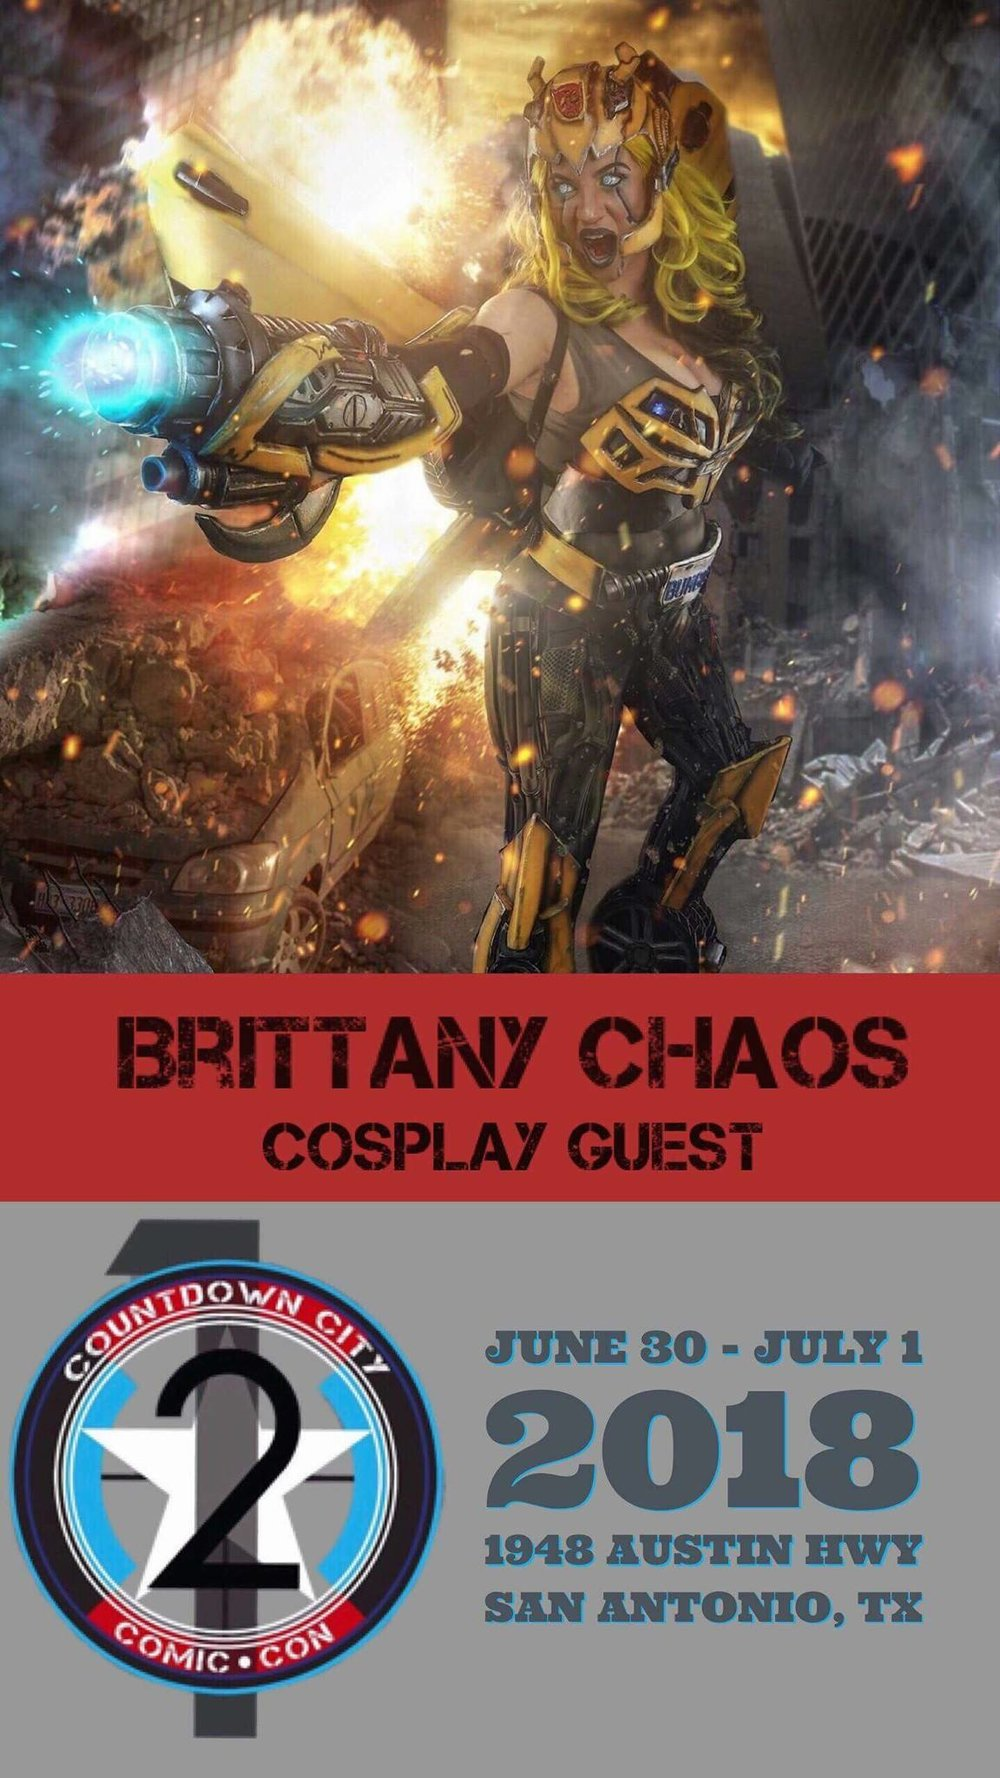 Brittany Chaos